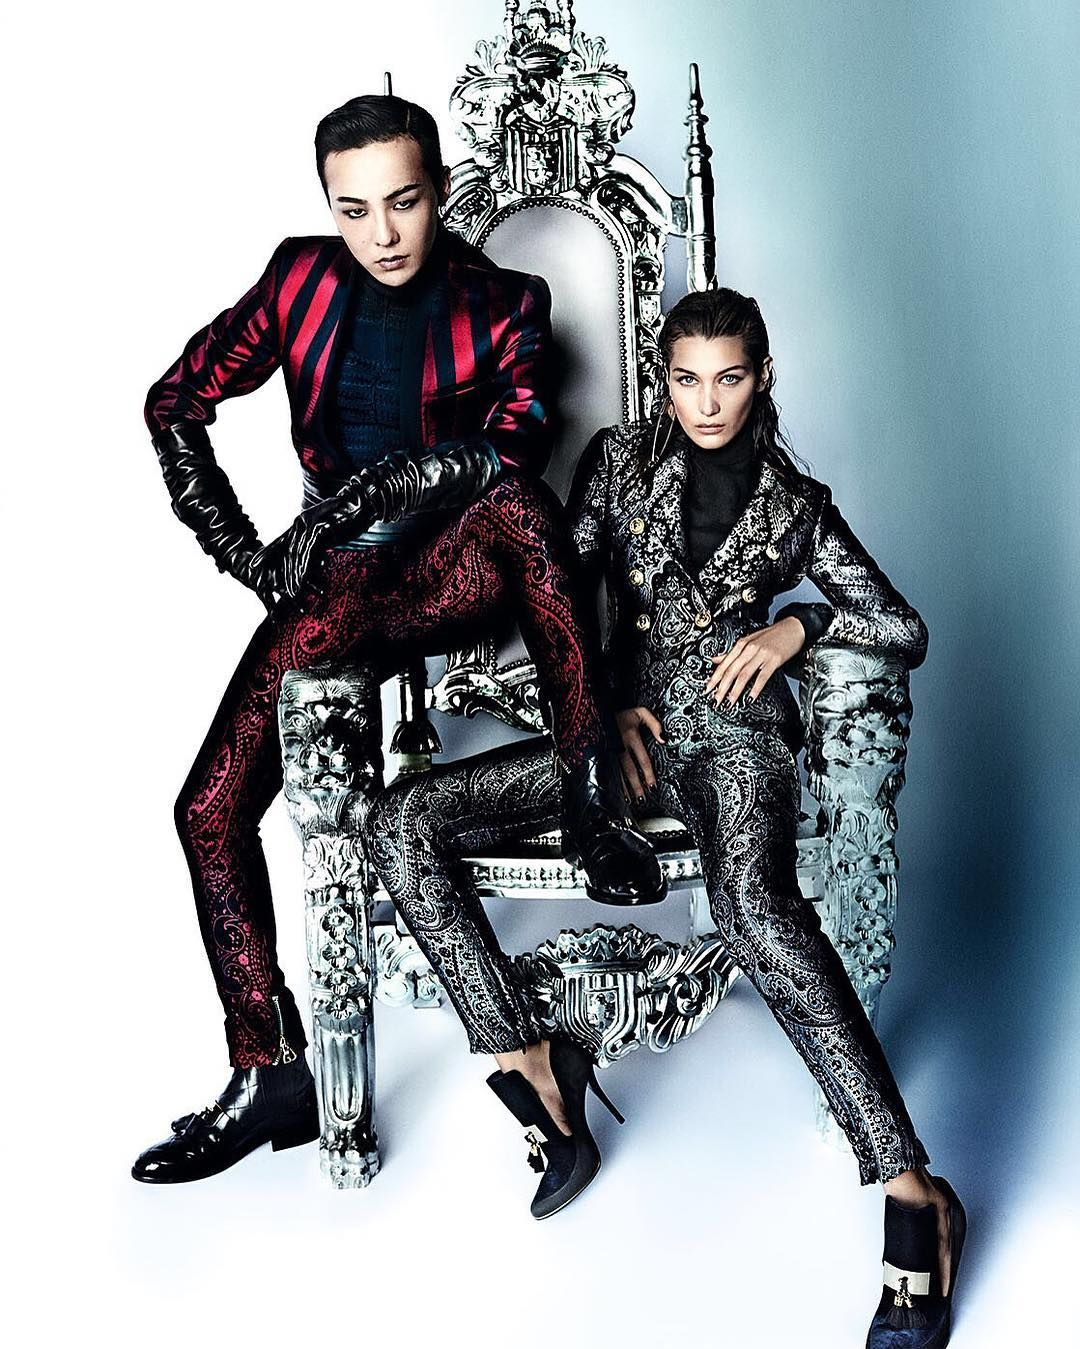 #GD #GDragon Vogue China August 2016 Issue